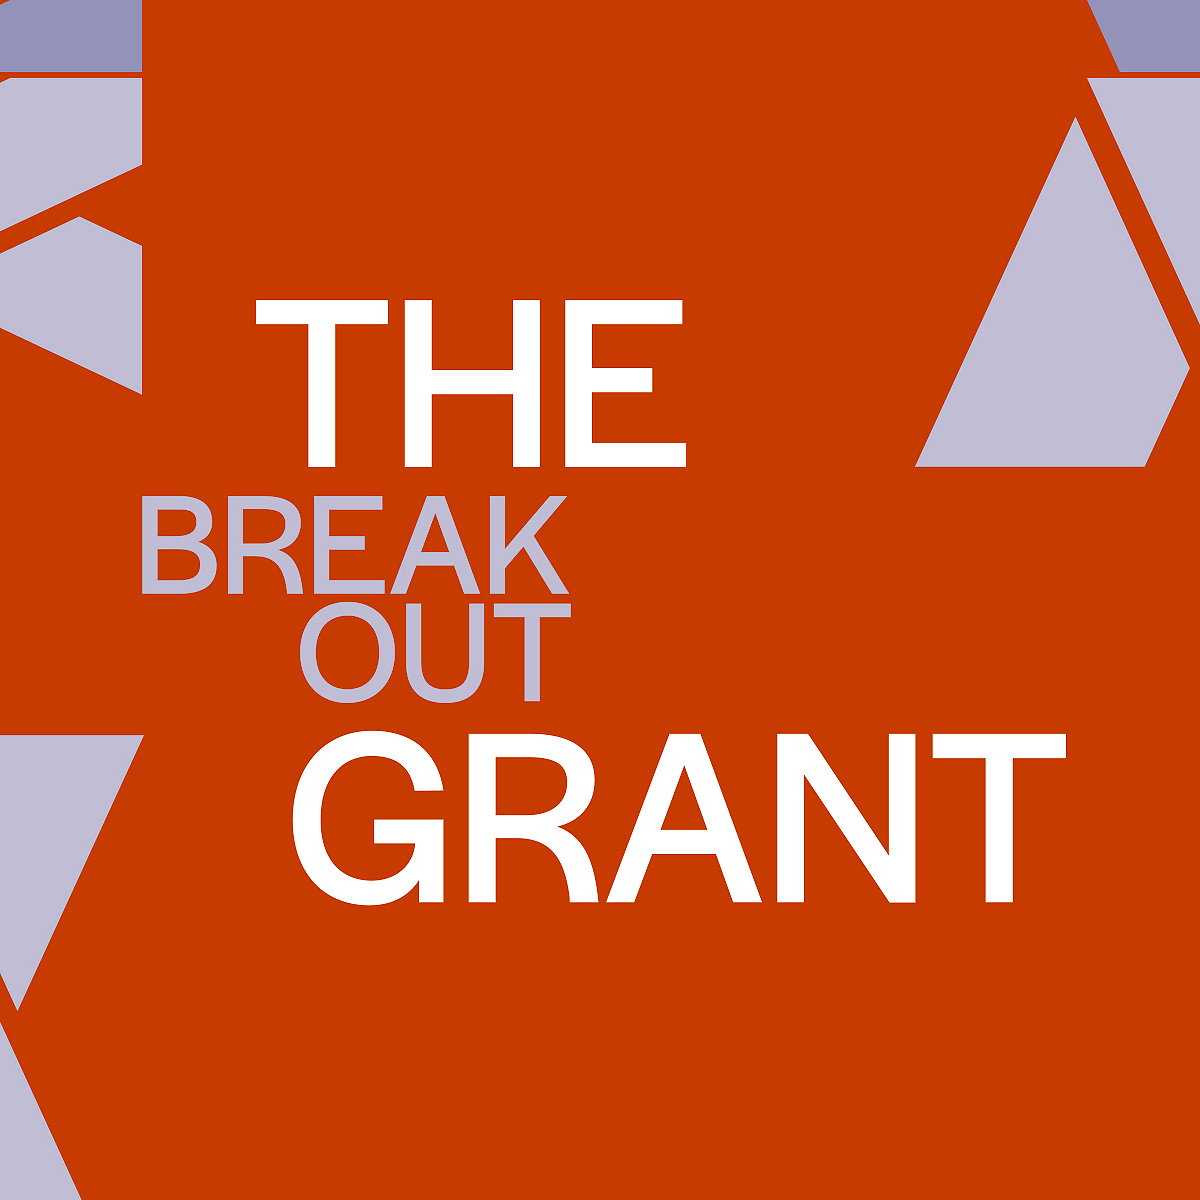 NYCxDESIGN Launches Its First Grant as a Non-Profit